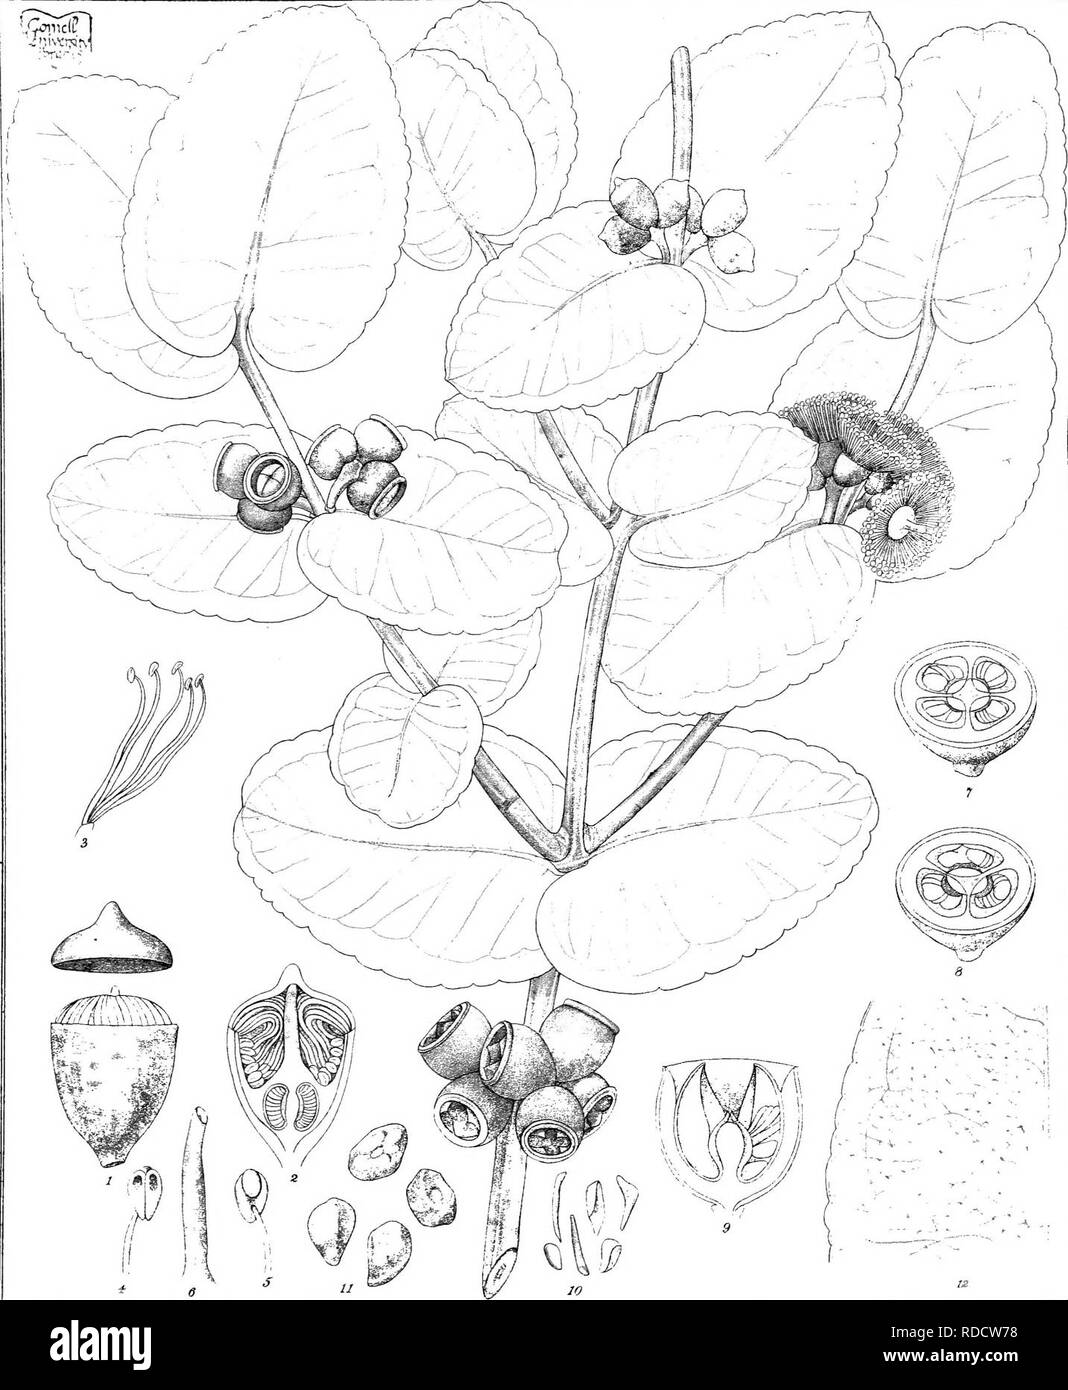 . Eucalyptographia. A descriptive atlas of the eucalypts of Australia and the adjoining islands;. Eucalyptus; Botany. Zjil disl CTrcede. & C°li;?. F.vM direr it. Sleam Lill-io Got Pri!.'::!^- Offici :,;elb. ii(g|%]pte (g®2#ite, ZdMlldrdiere.. Please note that these images are extracted from scanned page images that may have been digitally enhanced for readability - coloration and appearance of these illustrations may not perfectly resemble the original work.. Mueller, Ferdinand von, 1825-1896. Melbourne, J. Ferres, Govt. Print; [etc. ,etc. ] - Stock Image